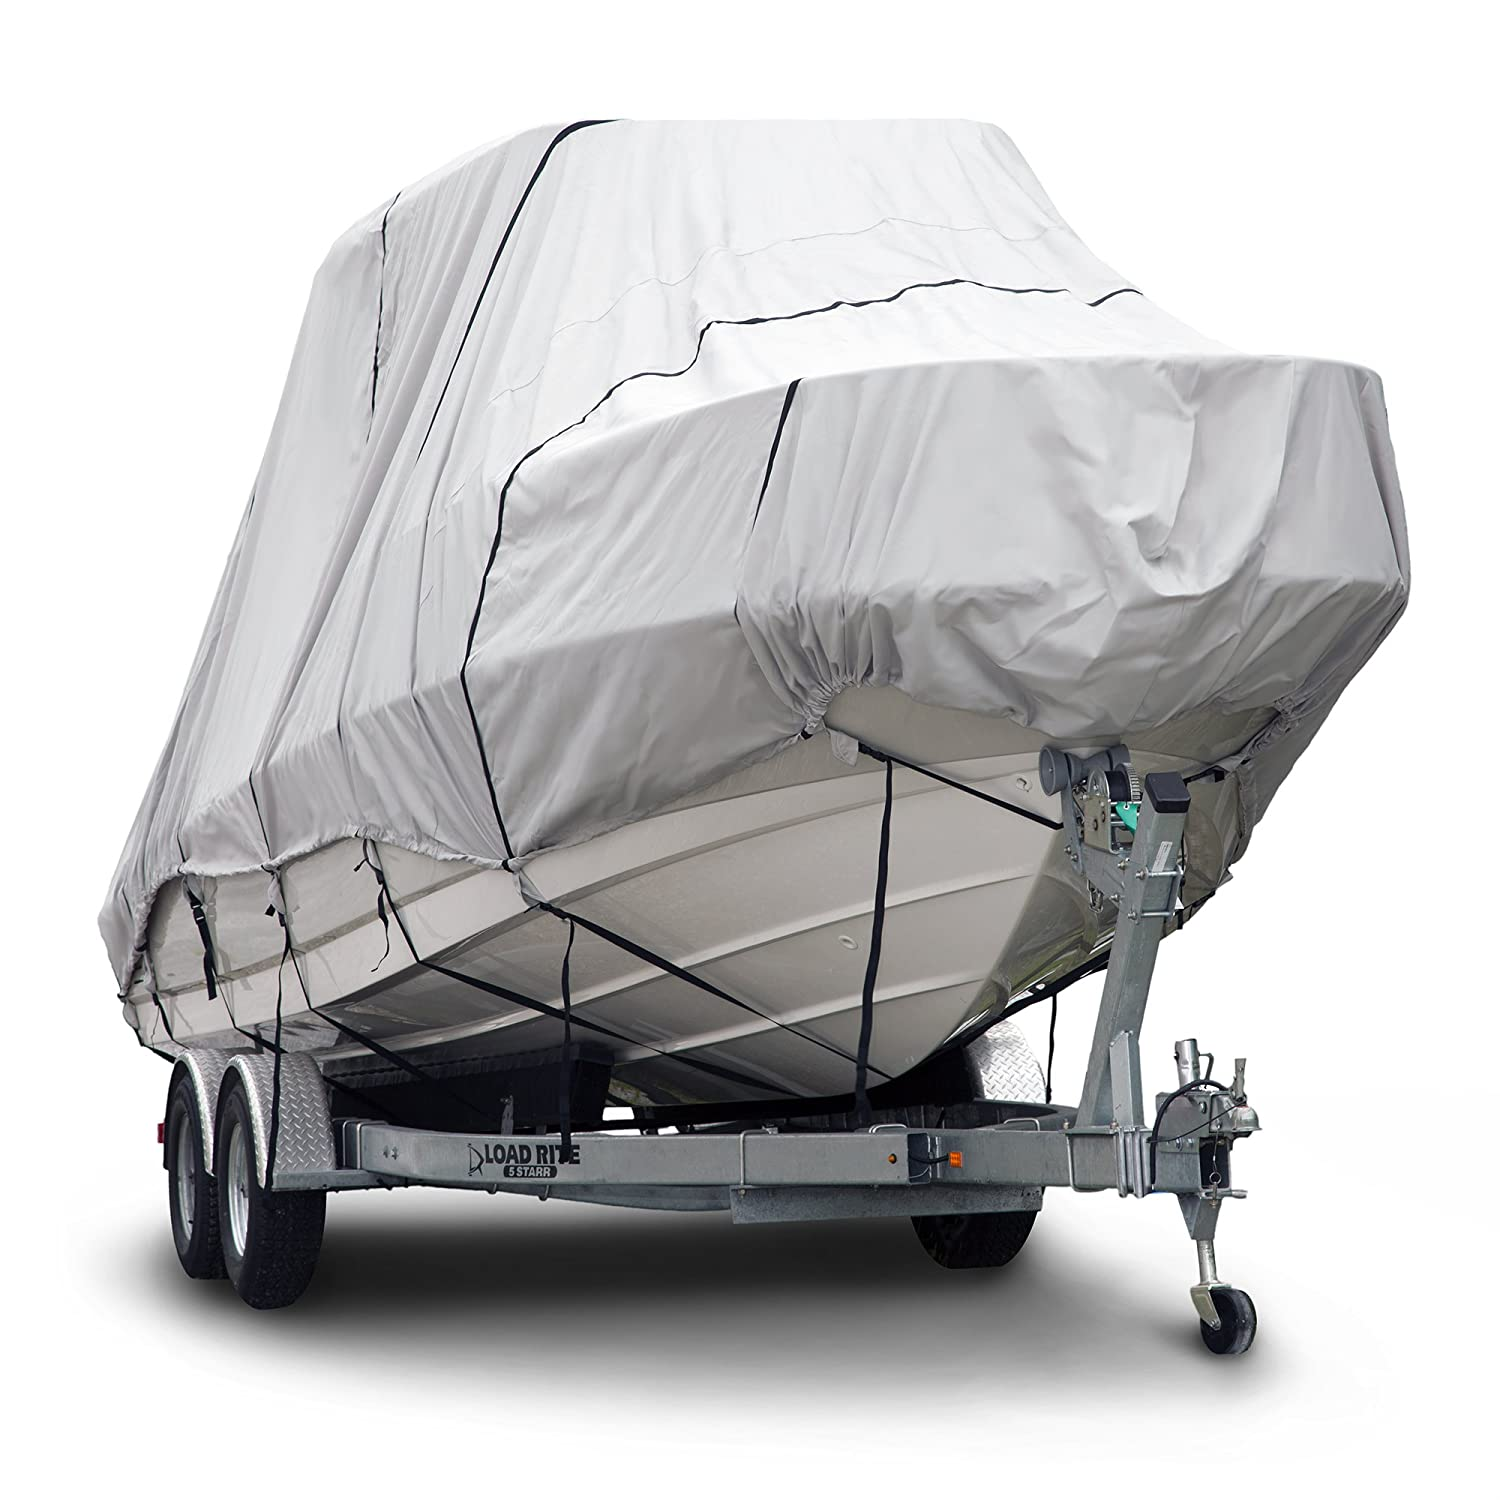 Budge 600 Denier Boat Cover fits Hard Top / T-Top Boats B-621-X4 (16' to 18' Long, Gray)